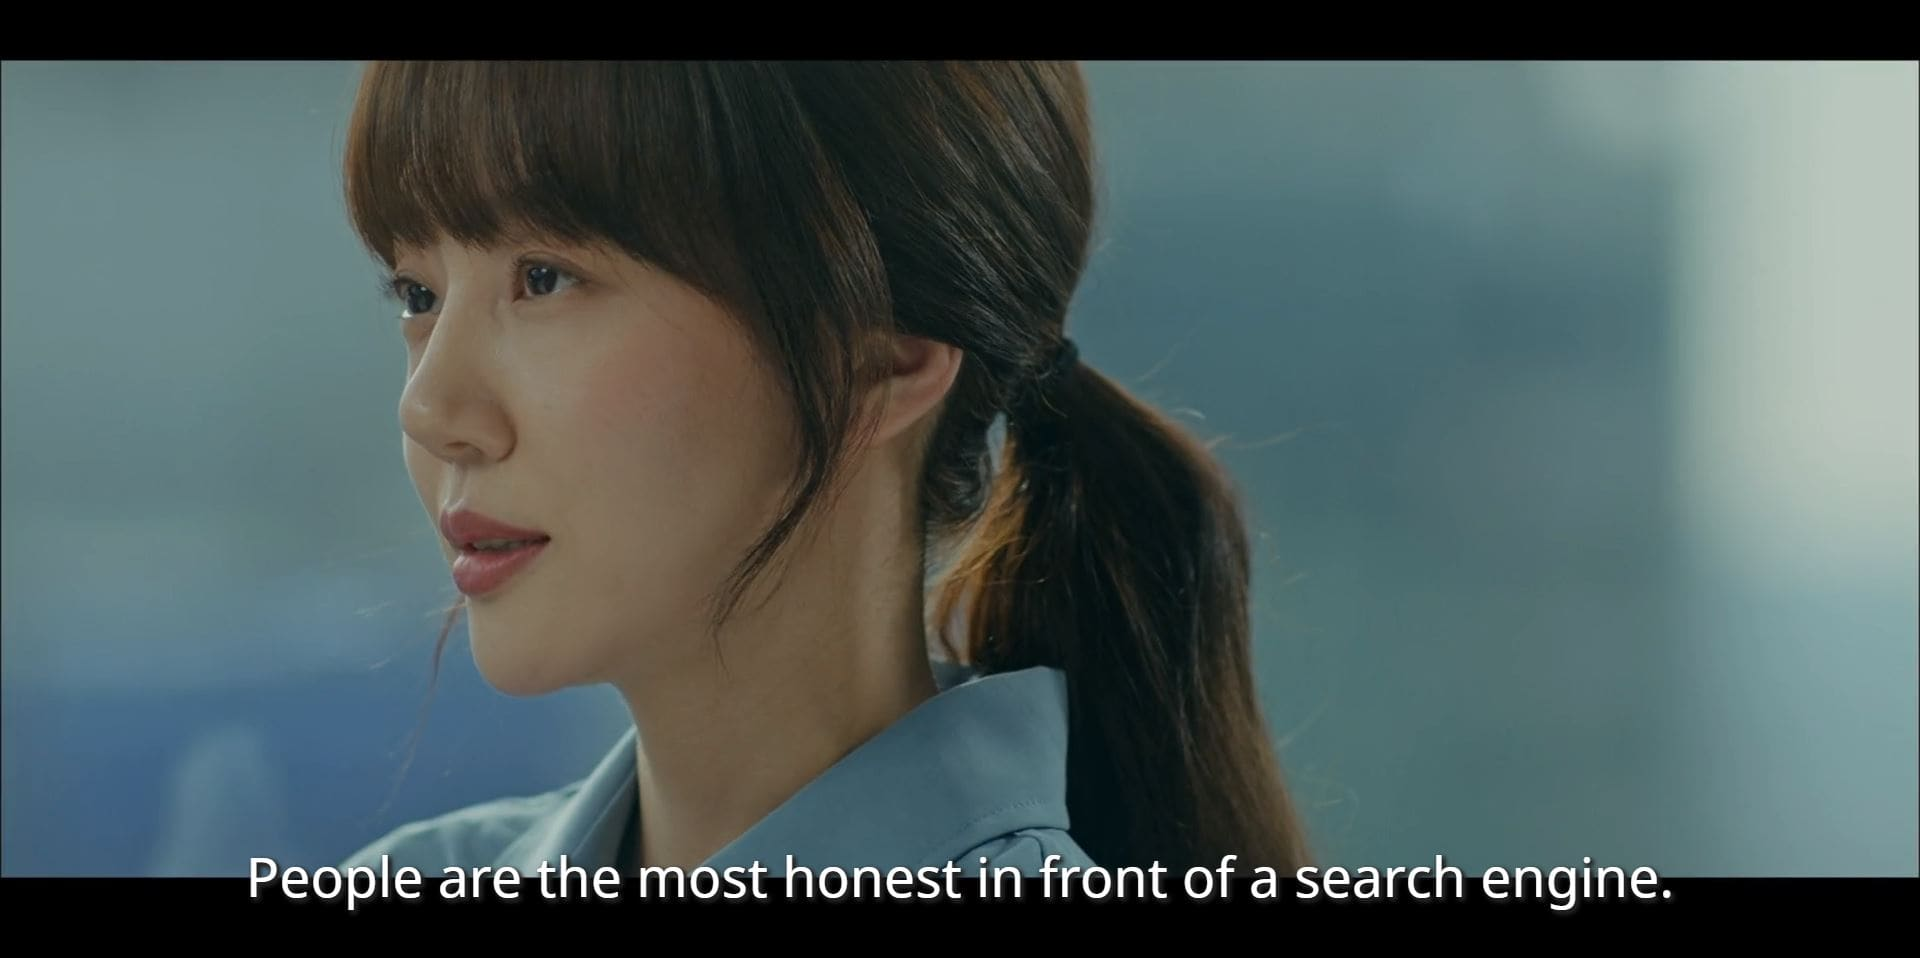 Search-WWW-Ep-1-Im-Soo-Jung-people-are-m